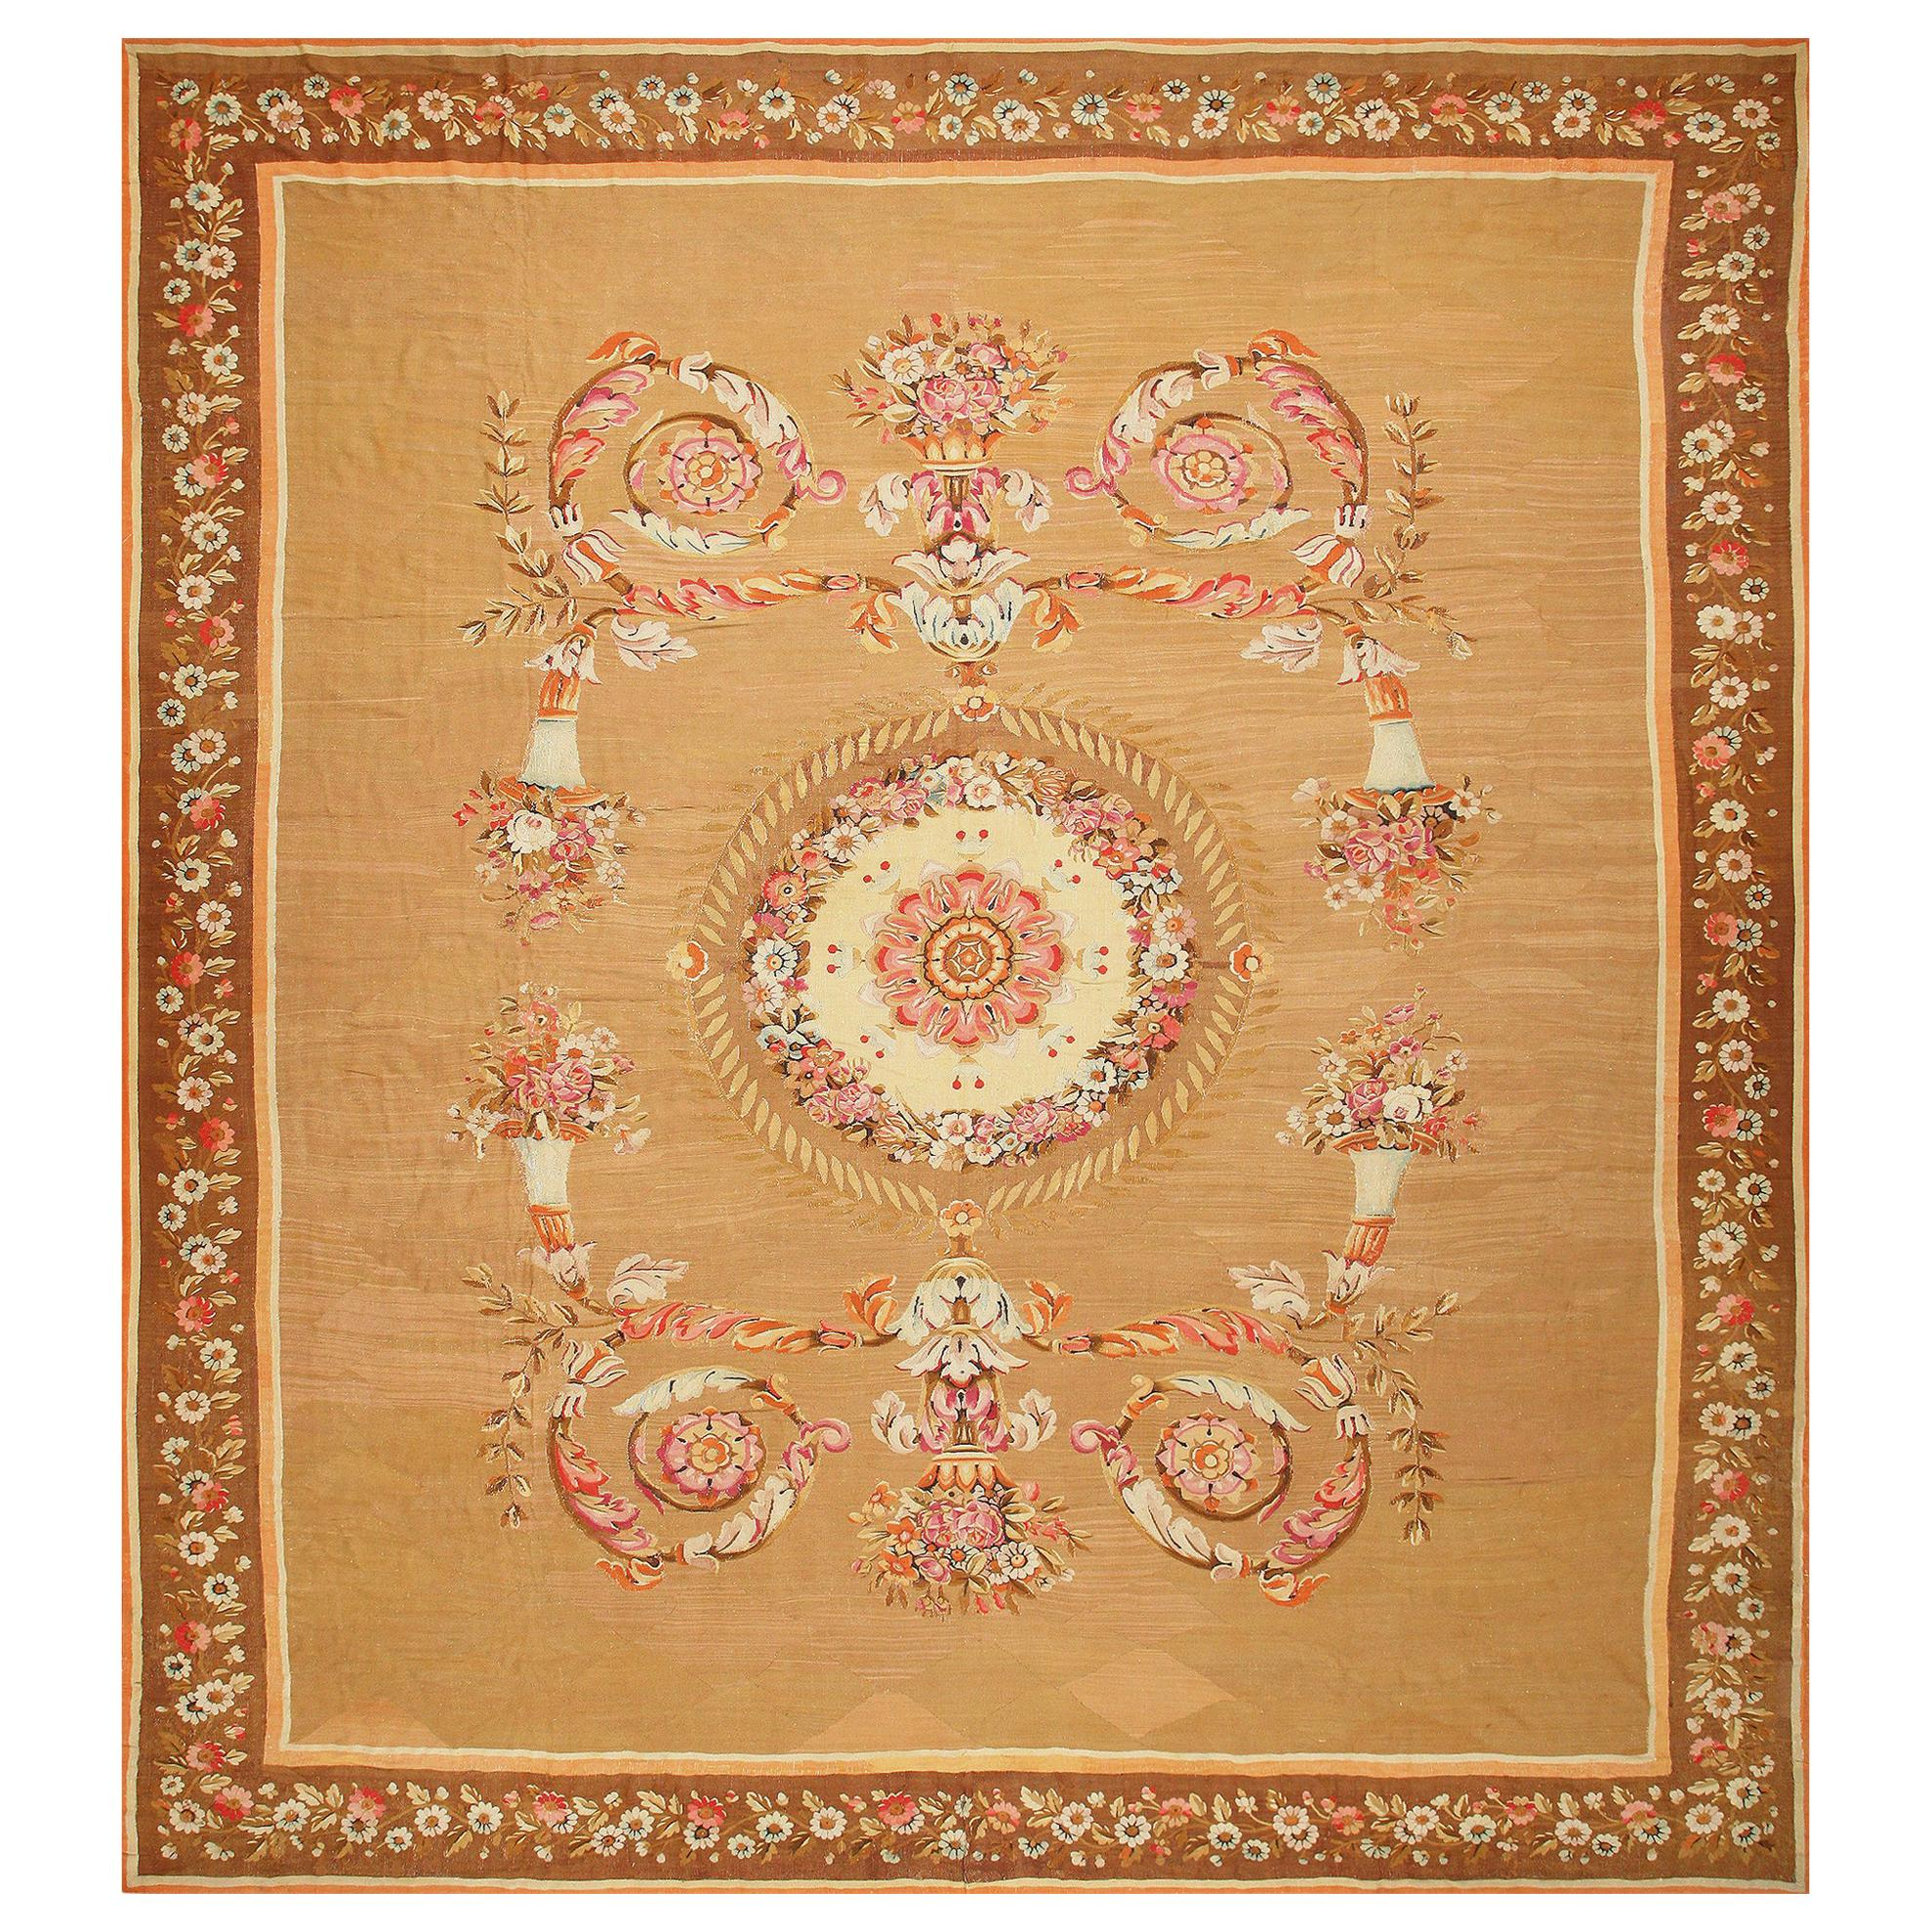 Large Antique French Aubusson Carpet. Size: 15 ft 4 in x 16 ft 8 in